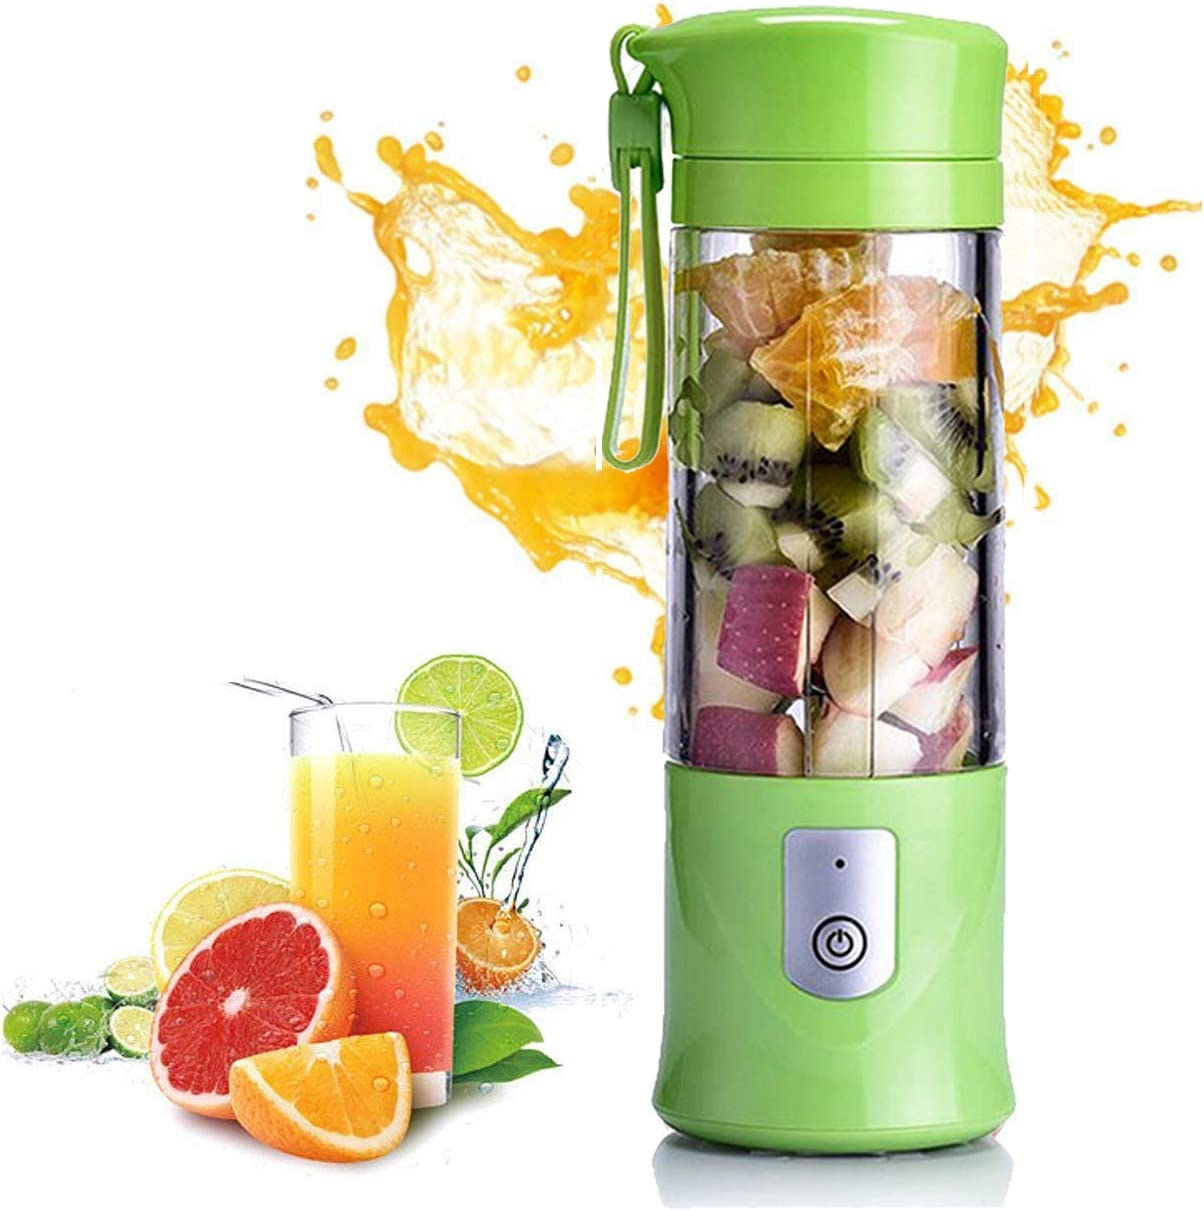 Portable Blender, Personal Size Blender USB Juicer Cup, 420ml Fruit Mixer Machine with 4000mAh Rechargeable Battery, Mini Travel Blender for Shakes and Smoothies, Baby Food, BPA-free (Green)